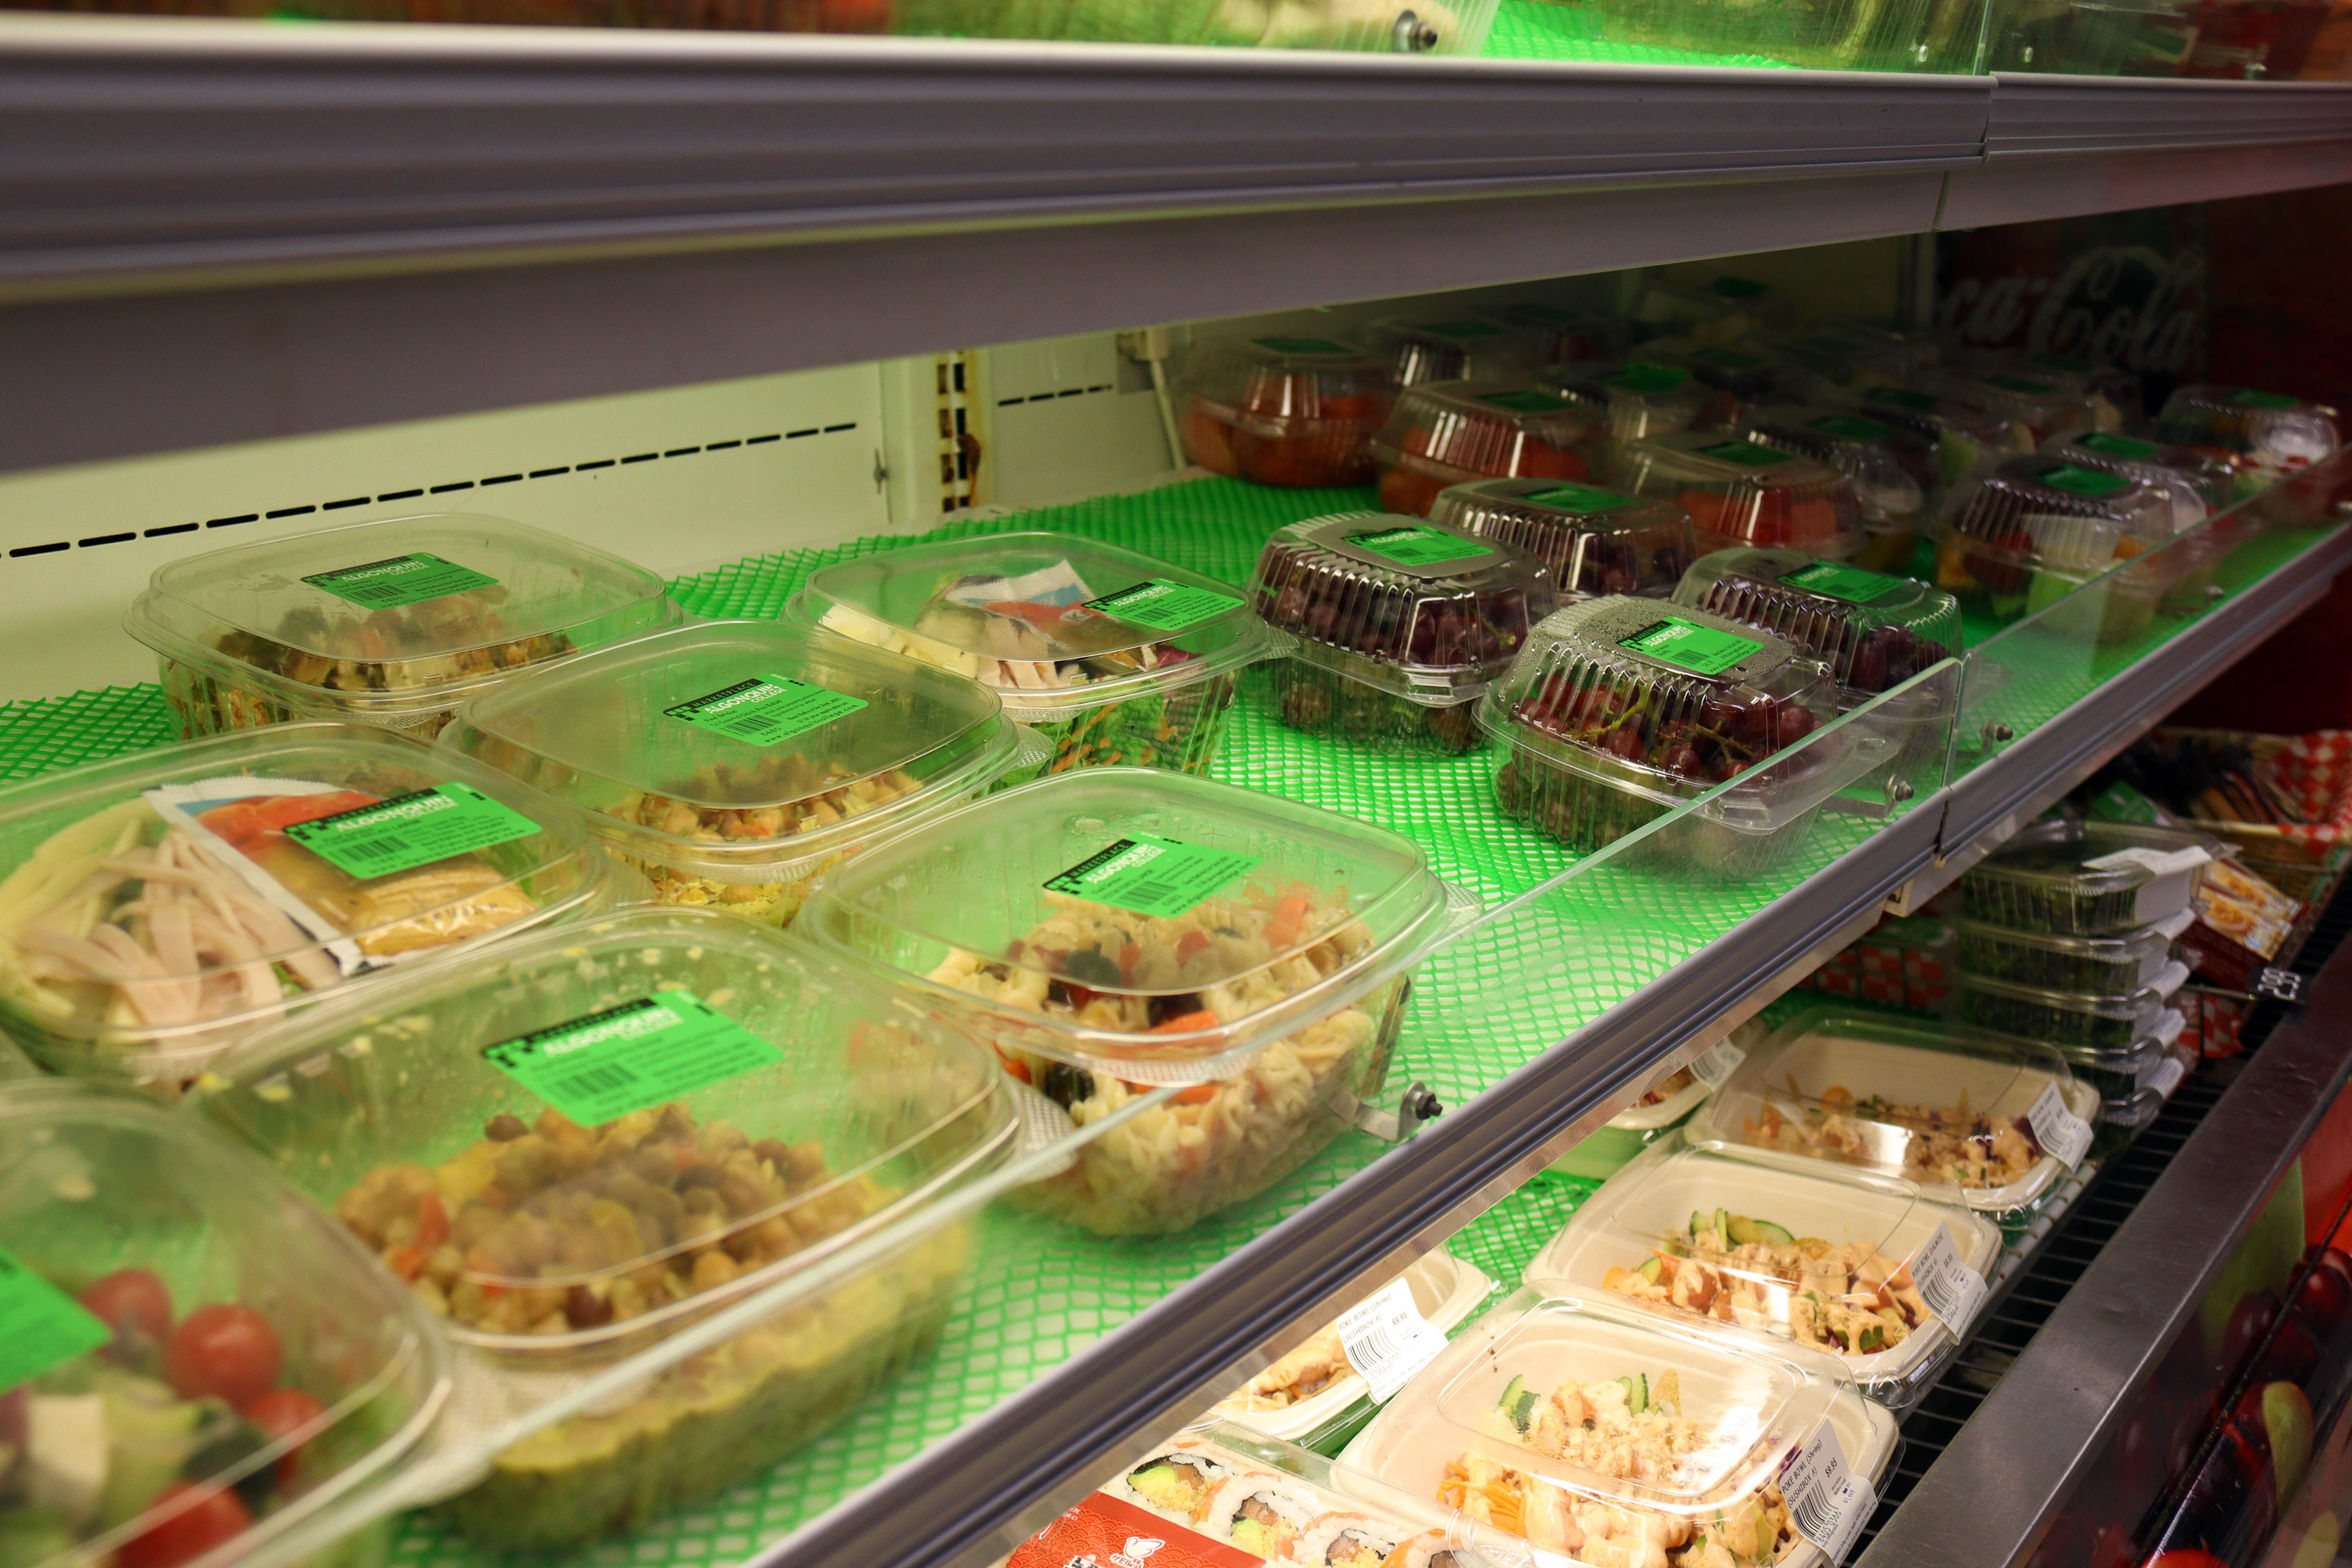 In the Marketplace food court, some vegetarian options can be found including fruit, salads and pasta.